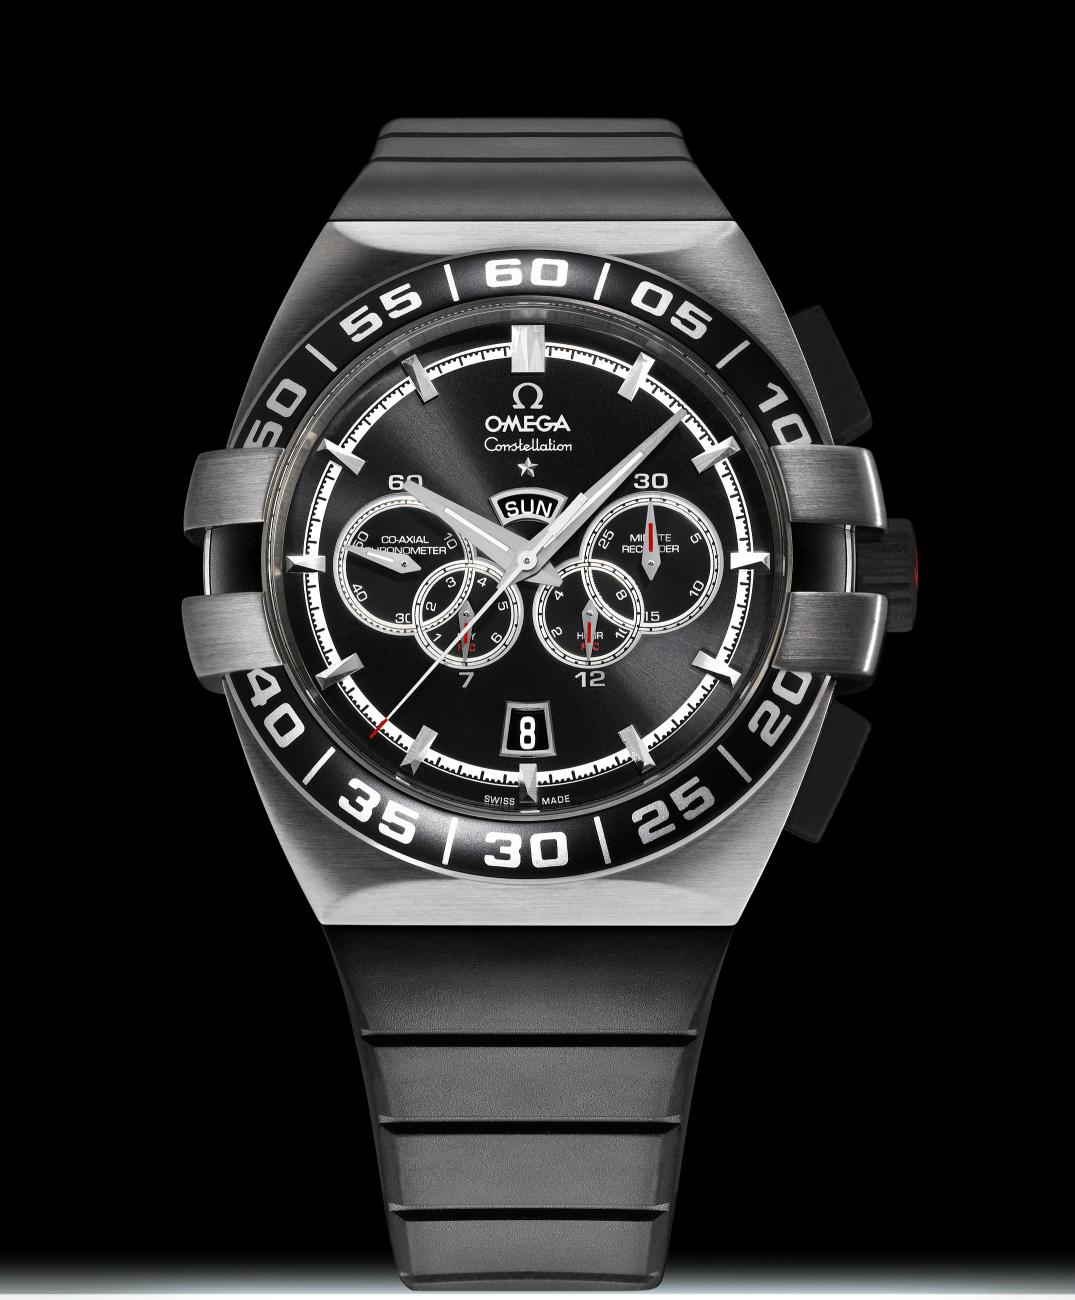 Omega Constellation Double Eagle 4 Counter Chronograph